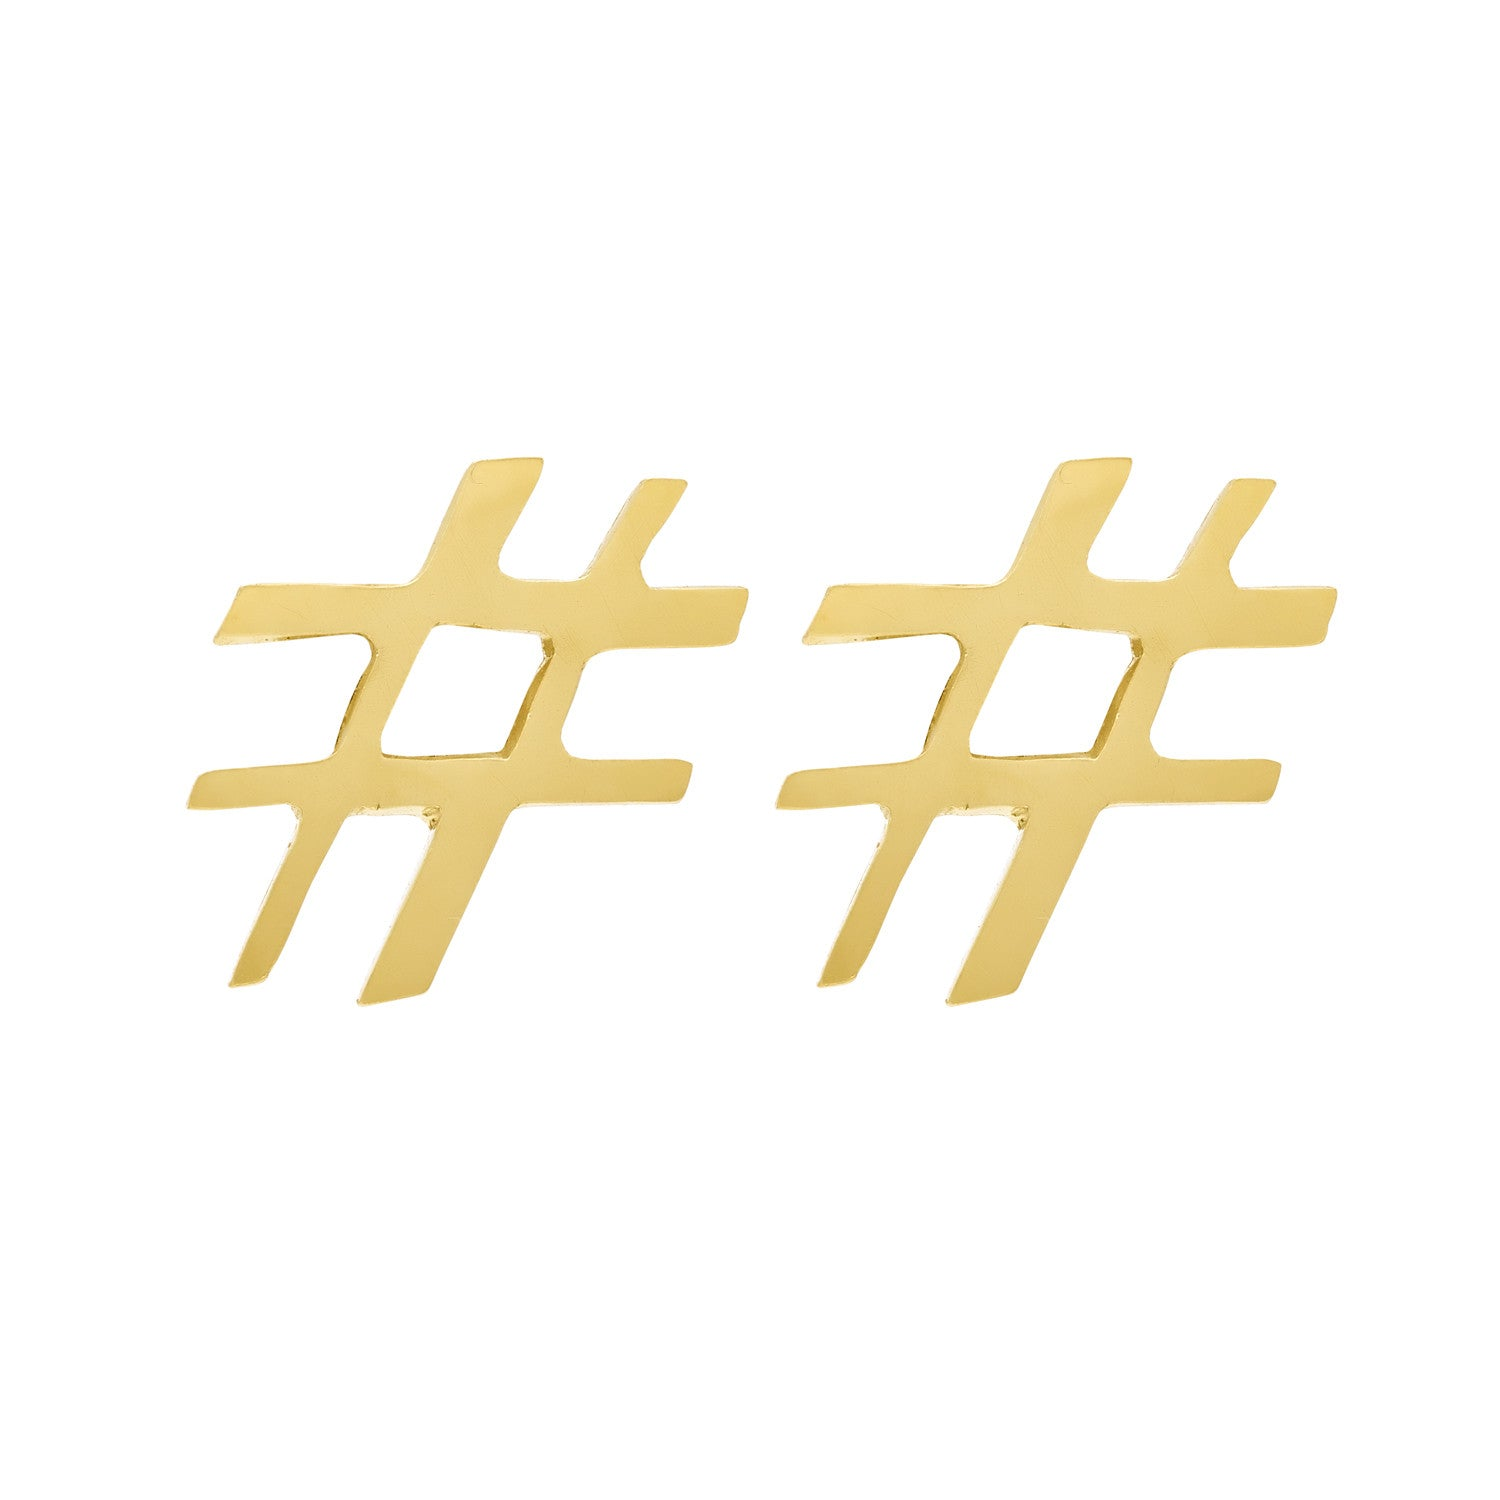 Coco\'s Liberty: Hashtag earrings   Jewelry -  Hiphunters Shop